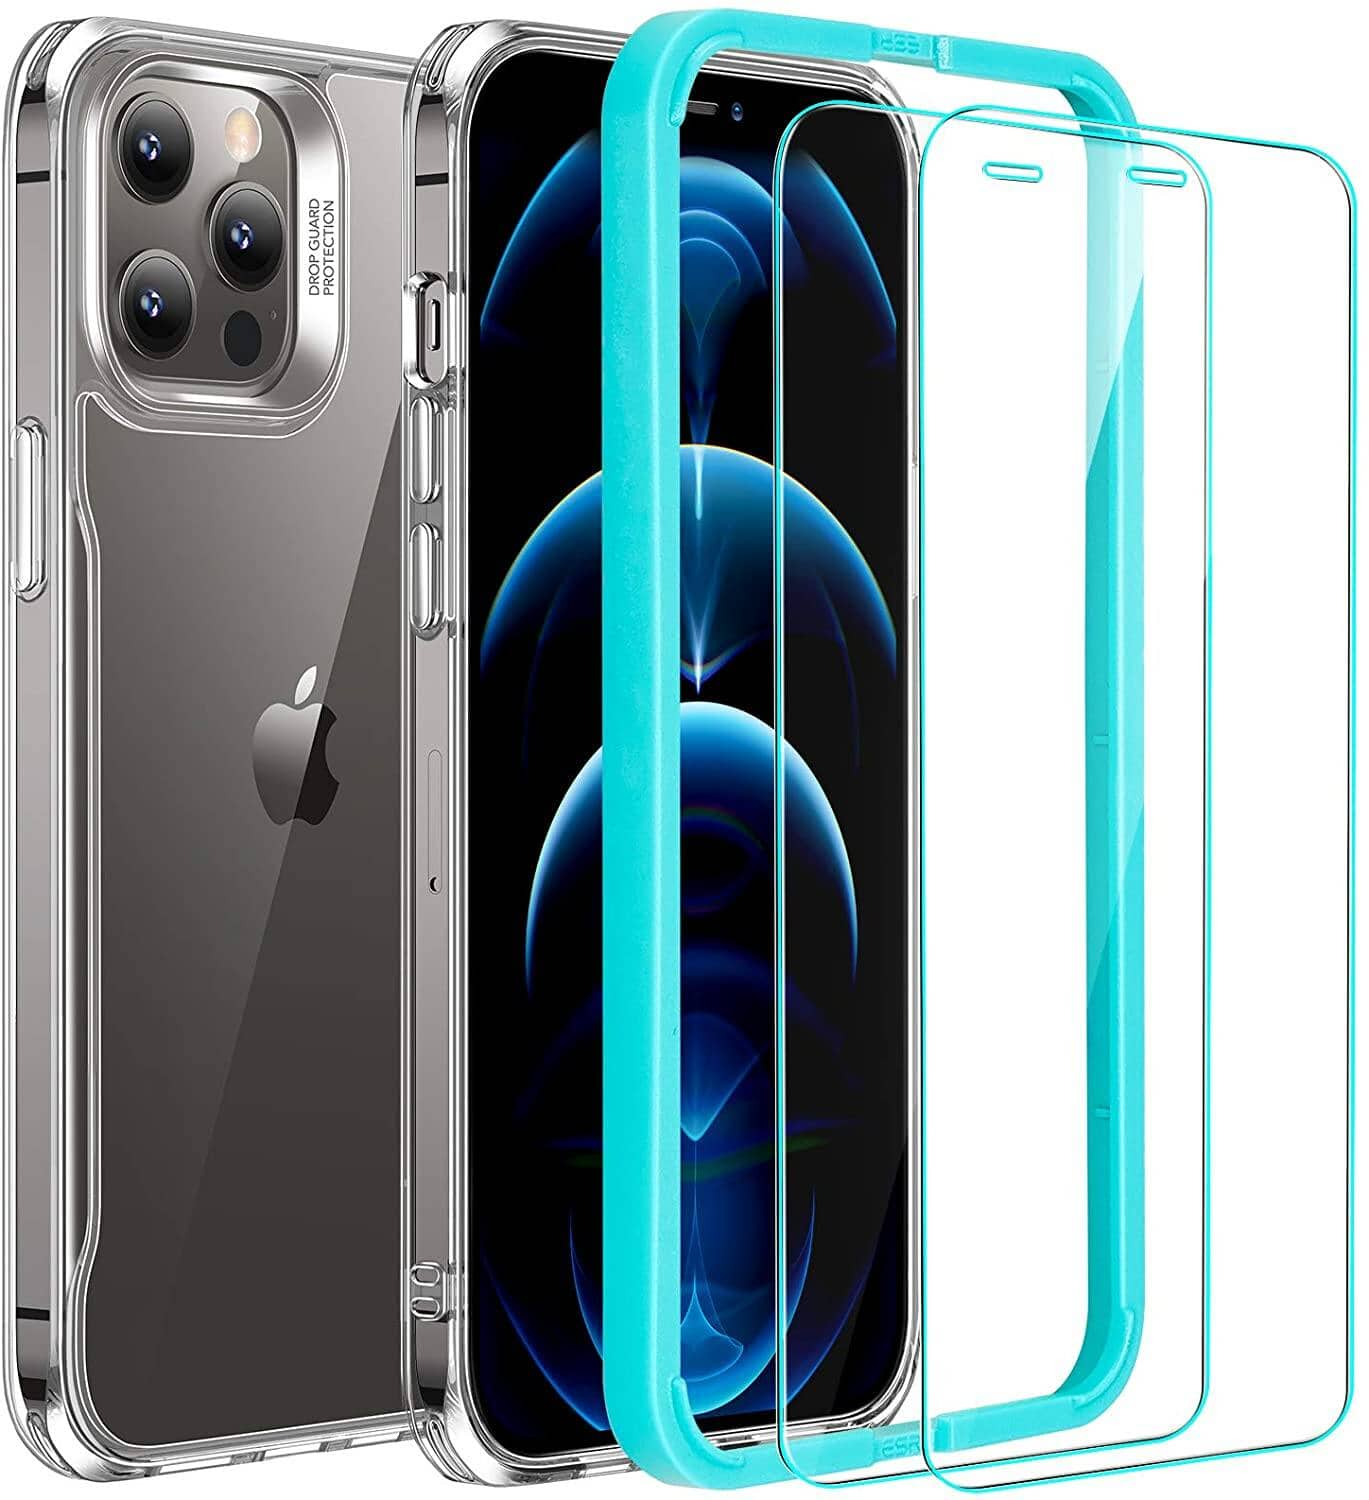 ESR iPhone 12 Pro Max Case + 2-Pack Screen Protector Set under $10 + FS w/ Prime or Orders $25+